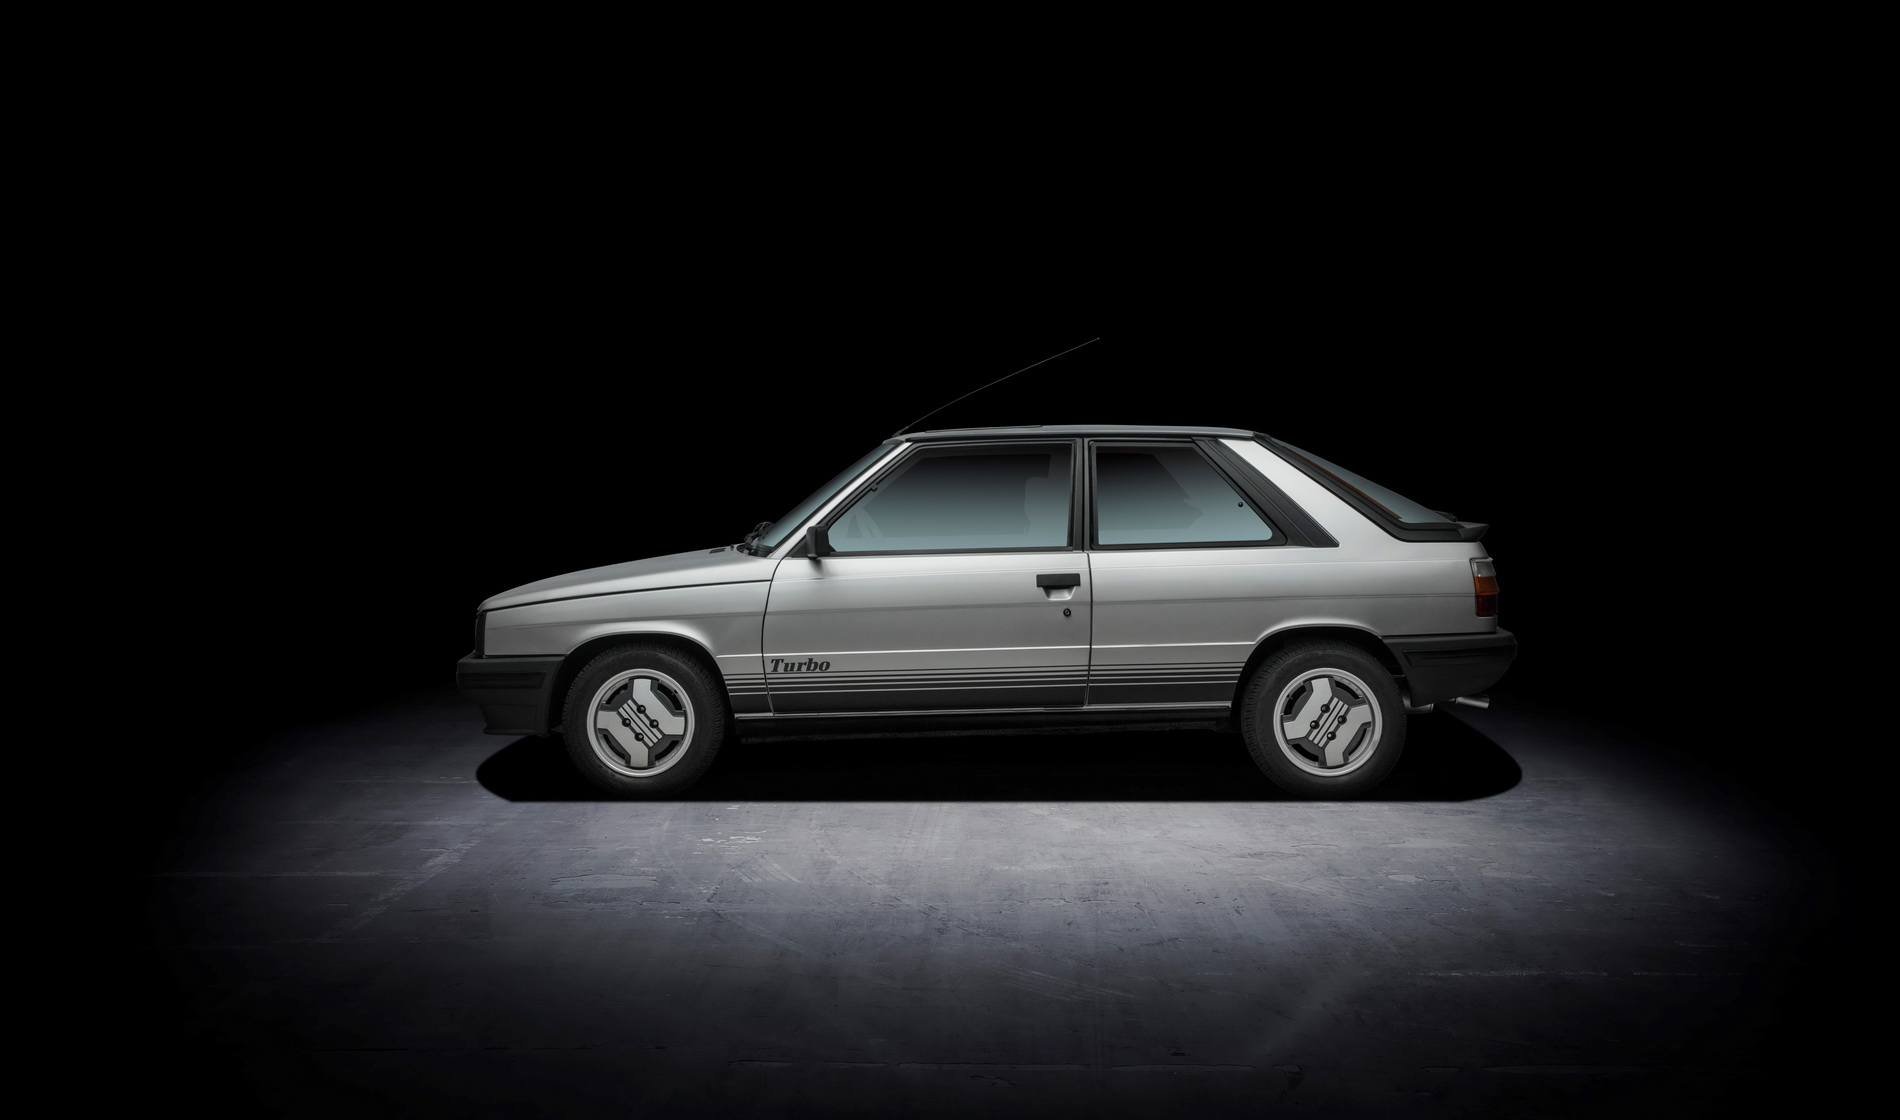 1984 – Renault 11 Turbo